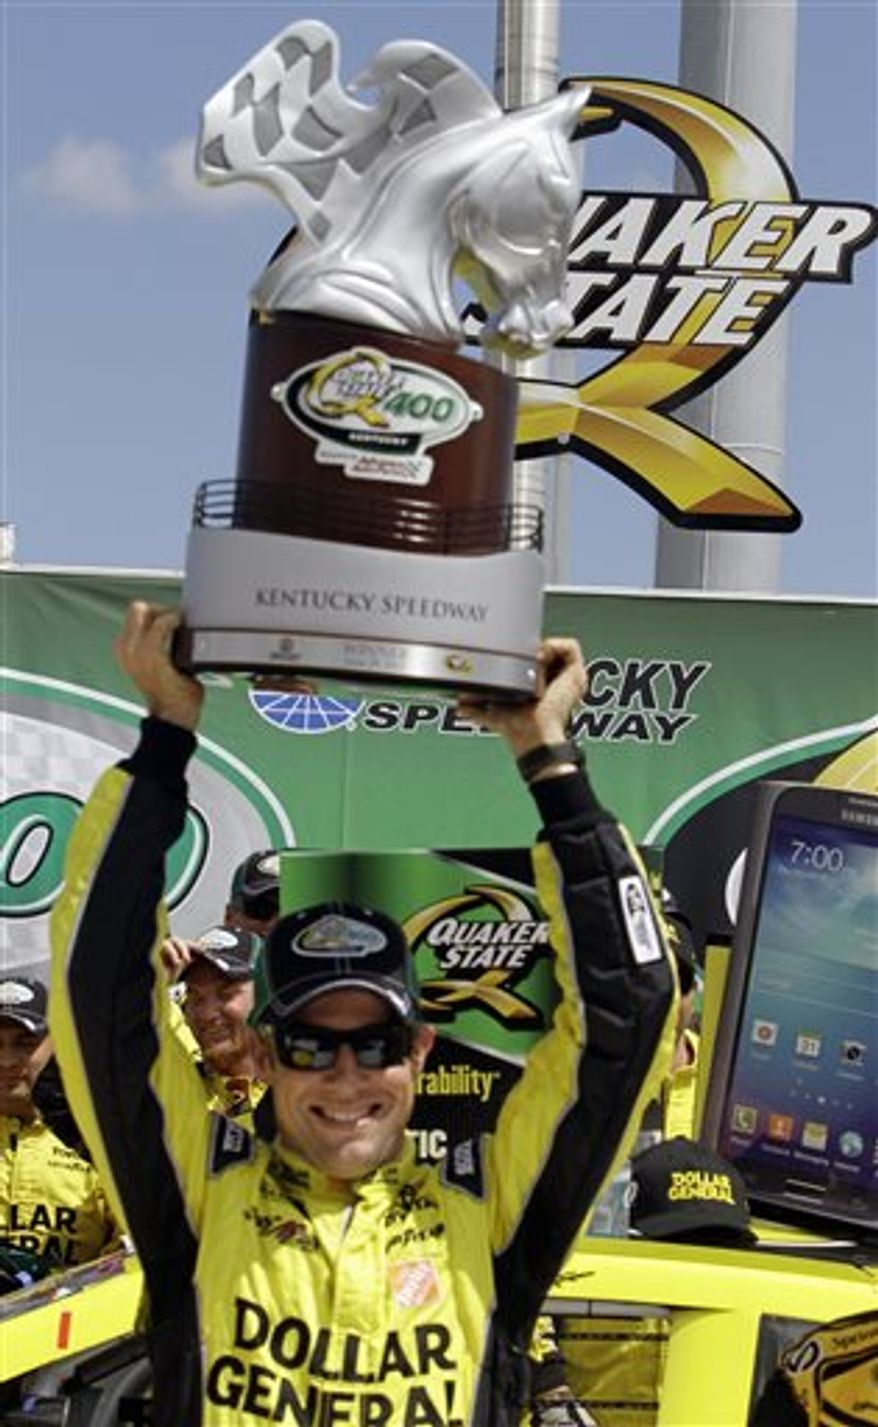 Matt Kenseth celebrates his victory in the NASCAR Sprint Cup auto race at Kentucky Speedway in Sparta, Ky., Sunday, June 30, 2013 by hoisting the trophy above his head in the winner's circle. (AP Photo/Garry Jones)